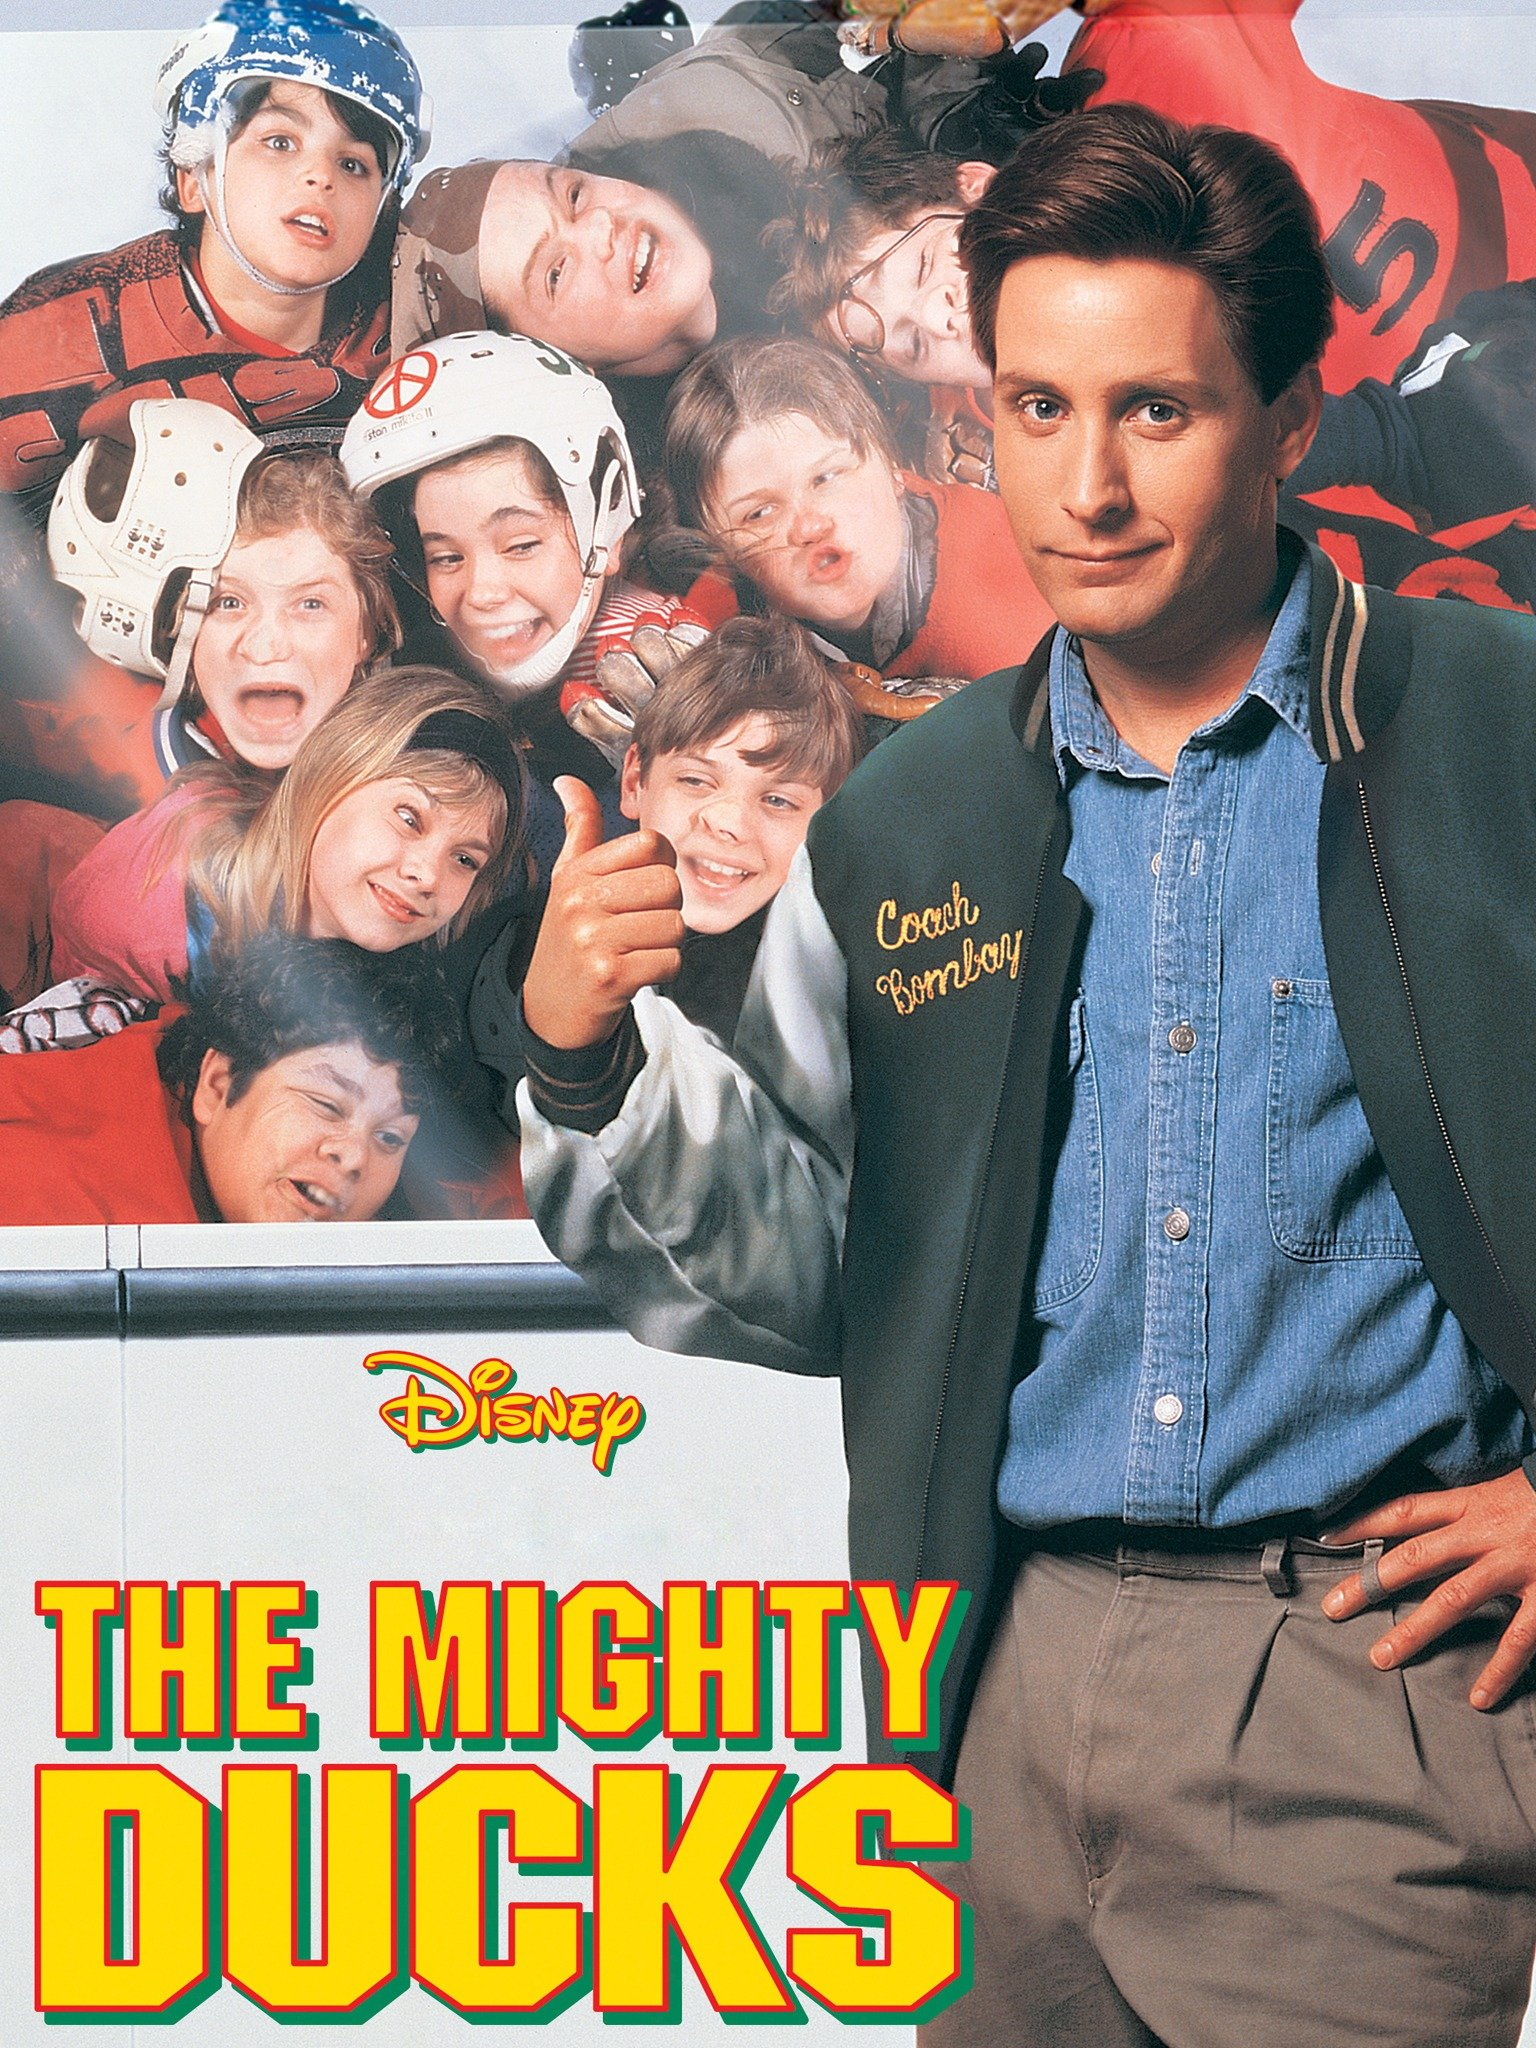 ss The Mighty Ducks